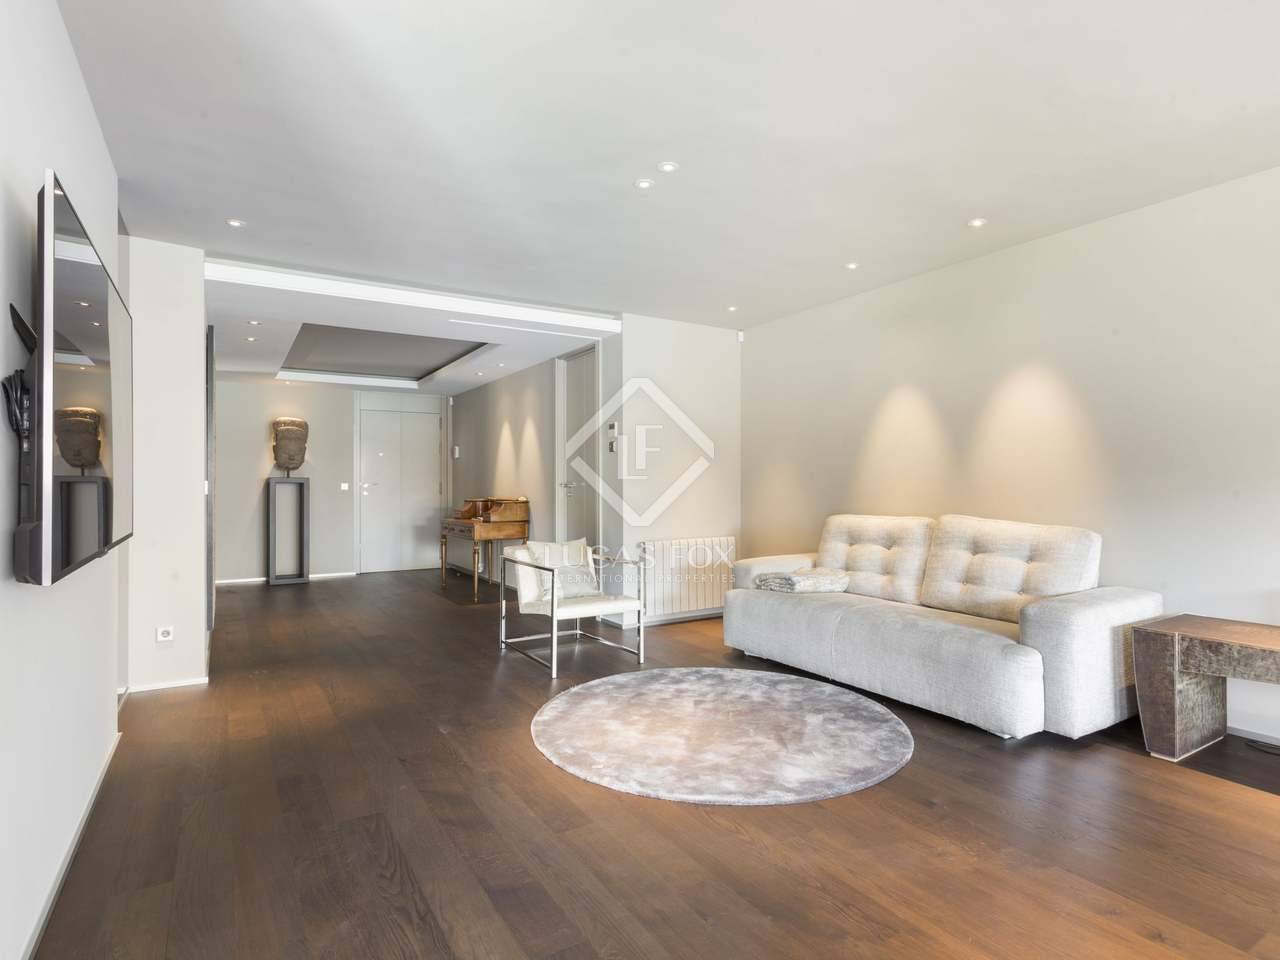 5 bedroom apartment for sale in tres torres barcelona for Five bedroom apartments